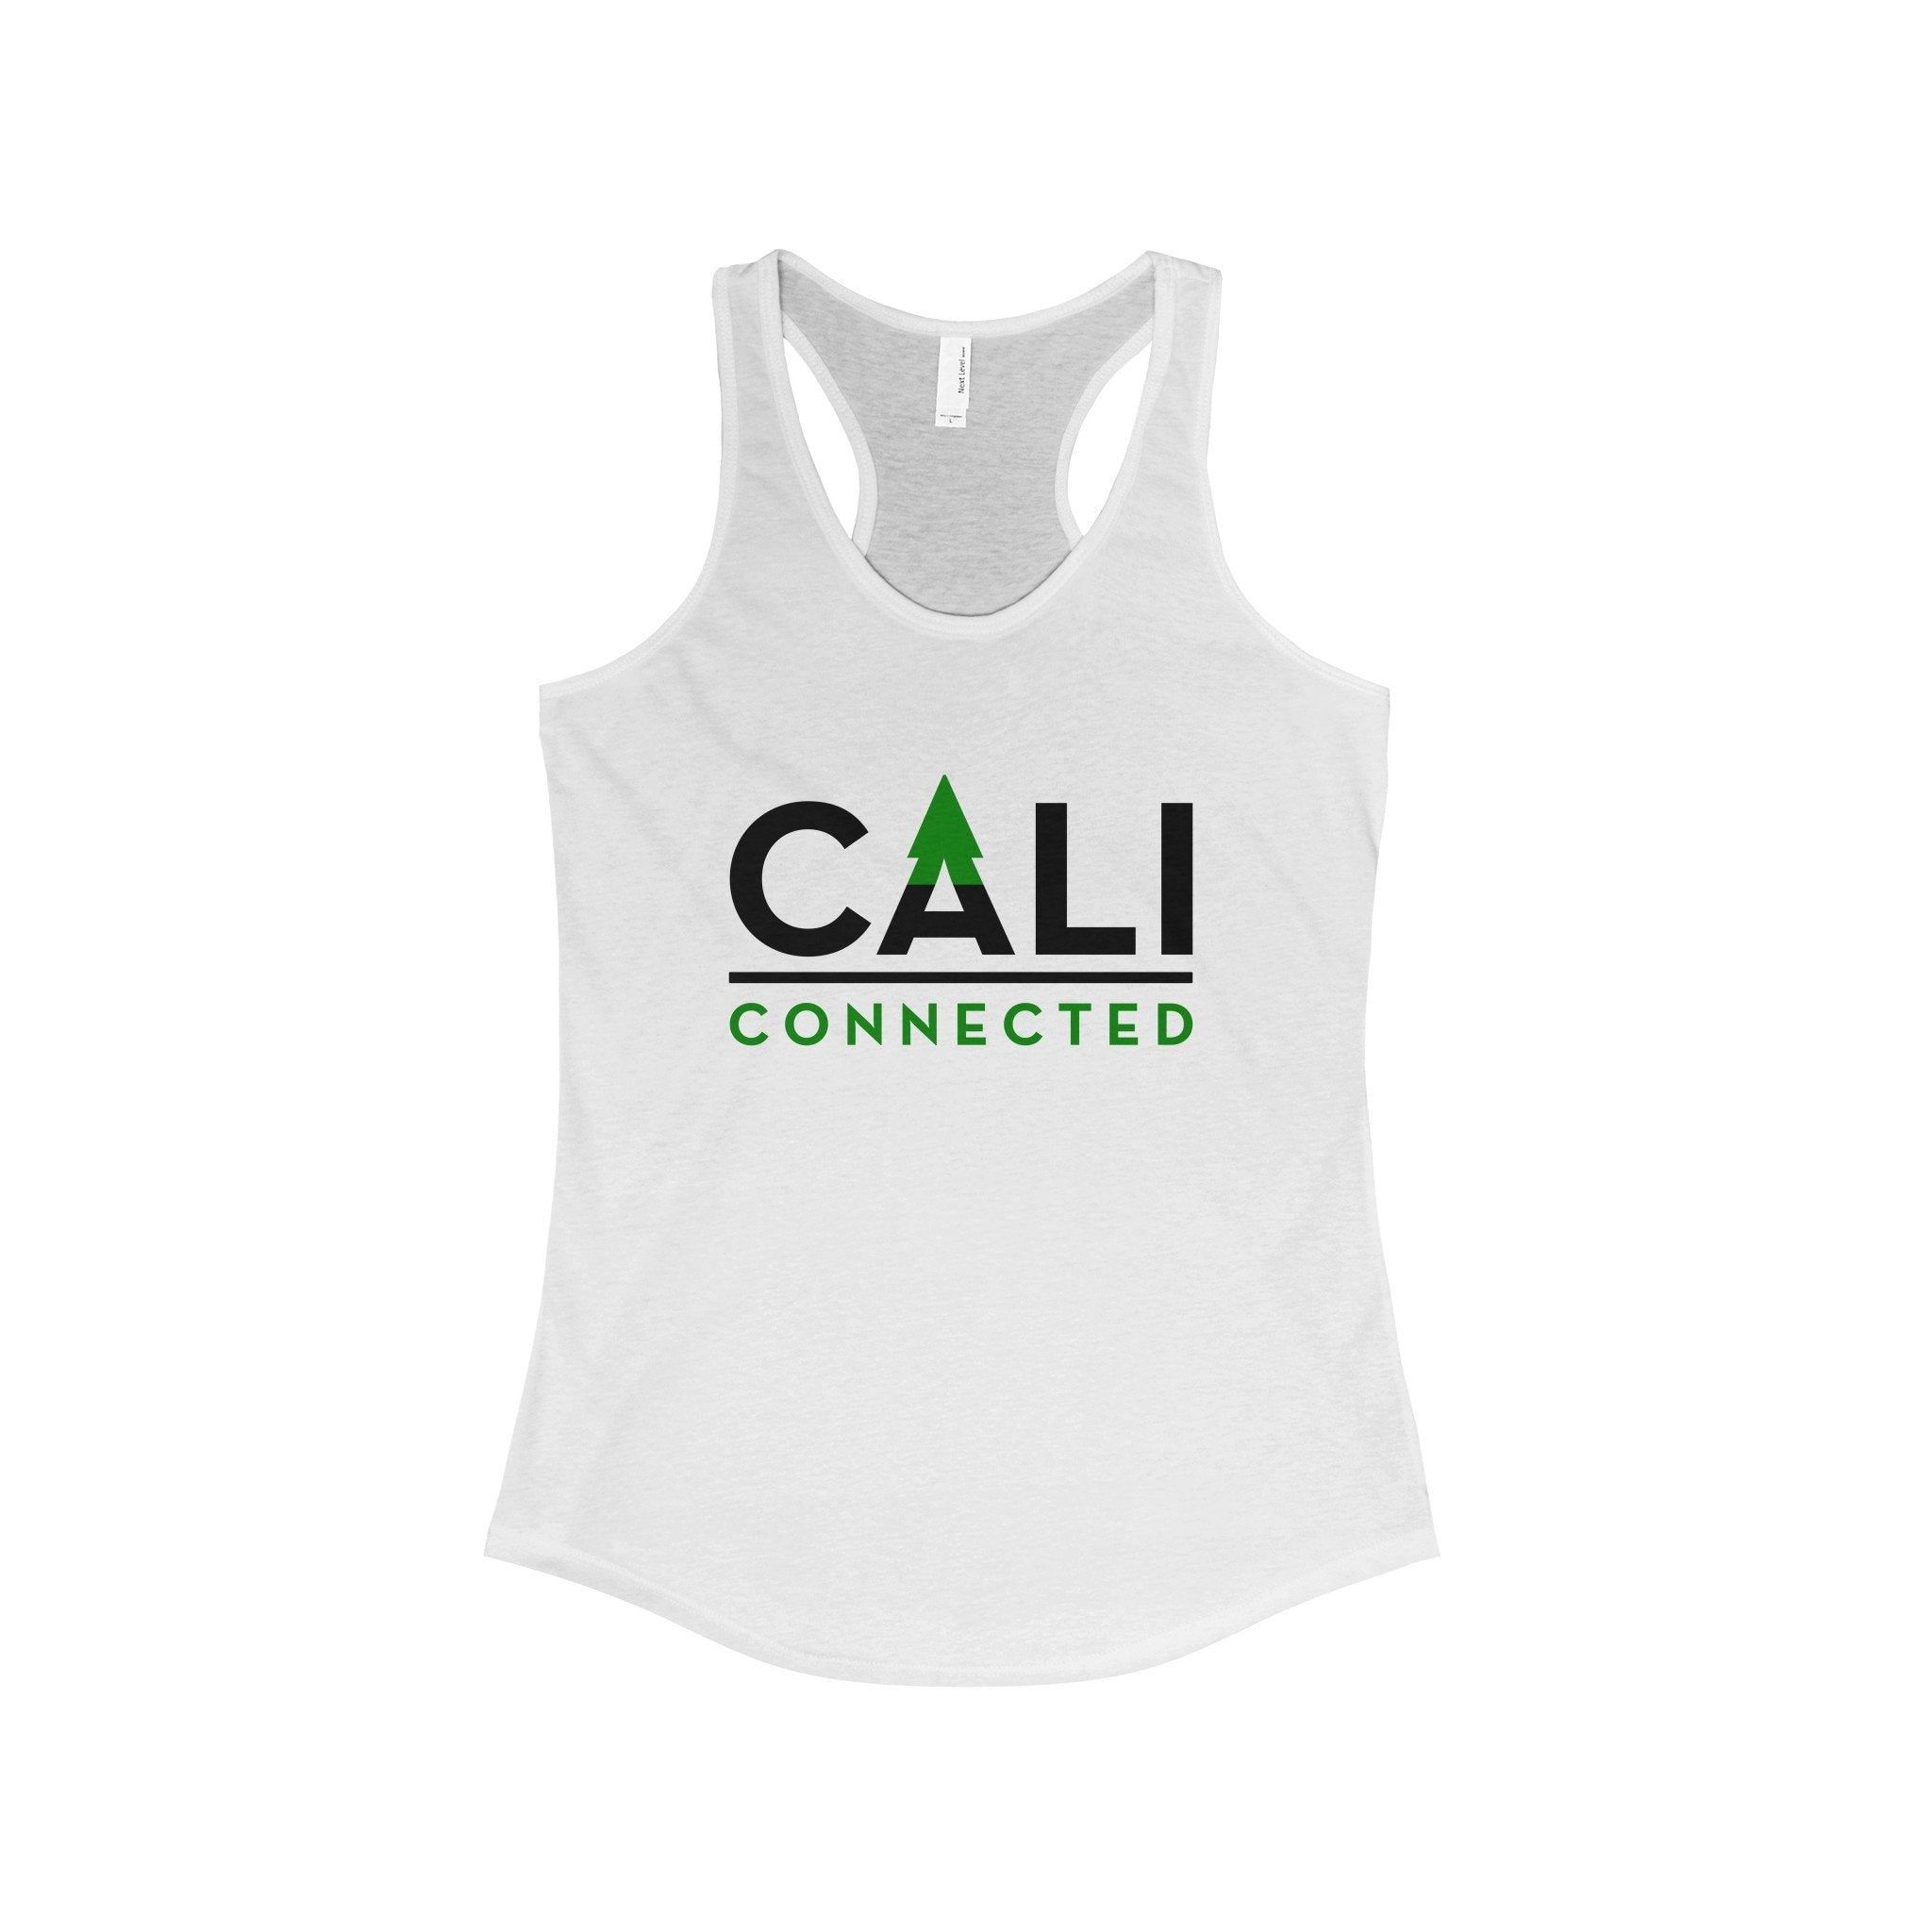 CaliConnected Women's Slim Fit White Racerback Tank - CaliConnected - Affordable wax and dry herb vaporizers eRigs & eNails, high quality glass bongs, cheap water pipes, wax concentrate dab rigs and unique smoking accessories at the best online smoke shop - CaliConnected Online Headshop